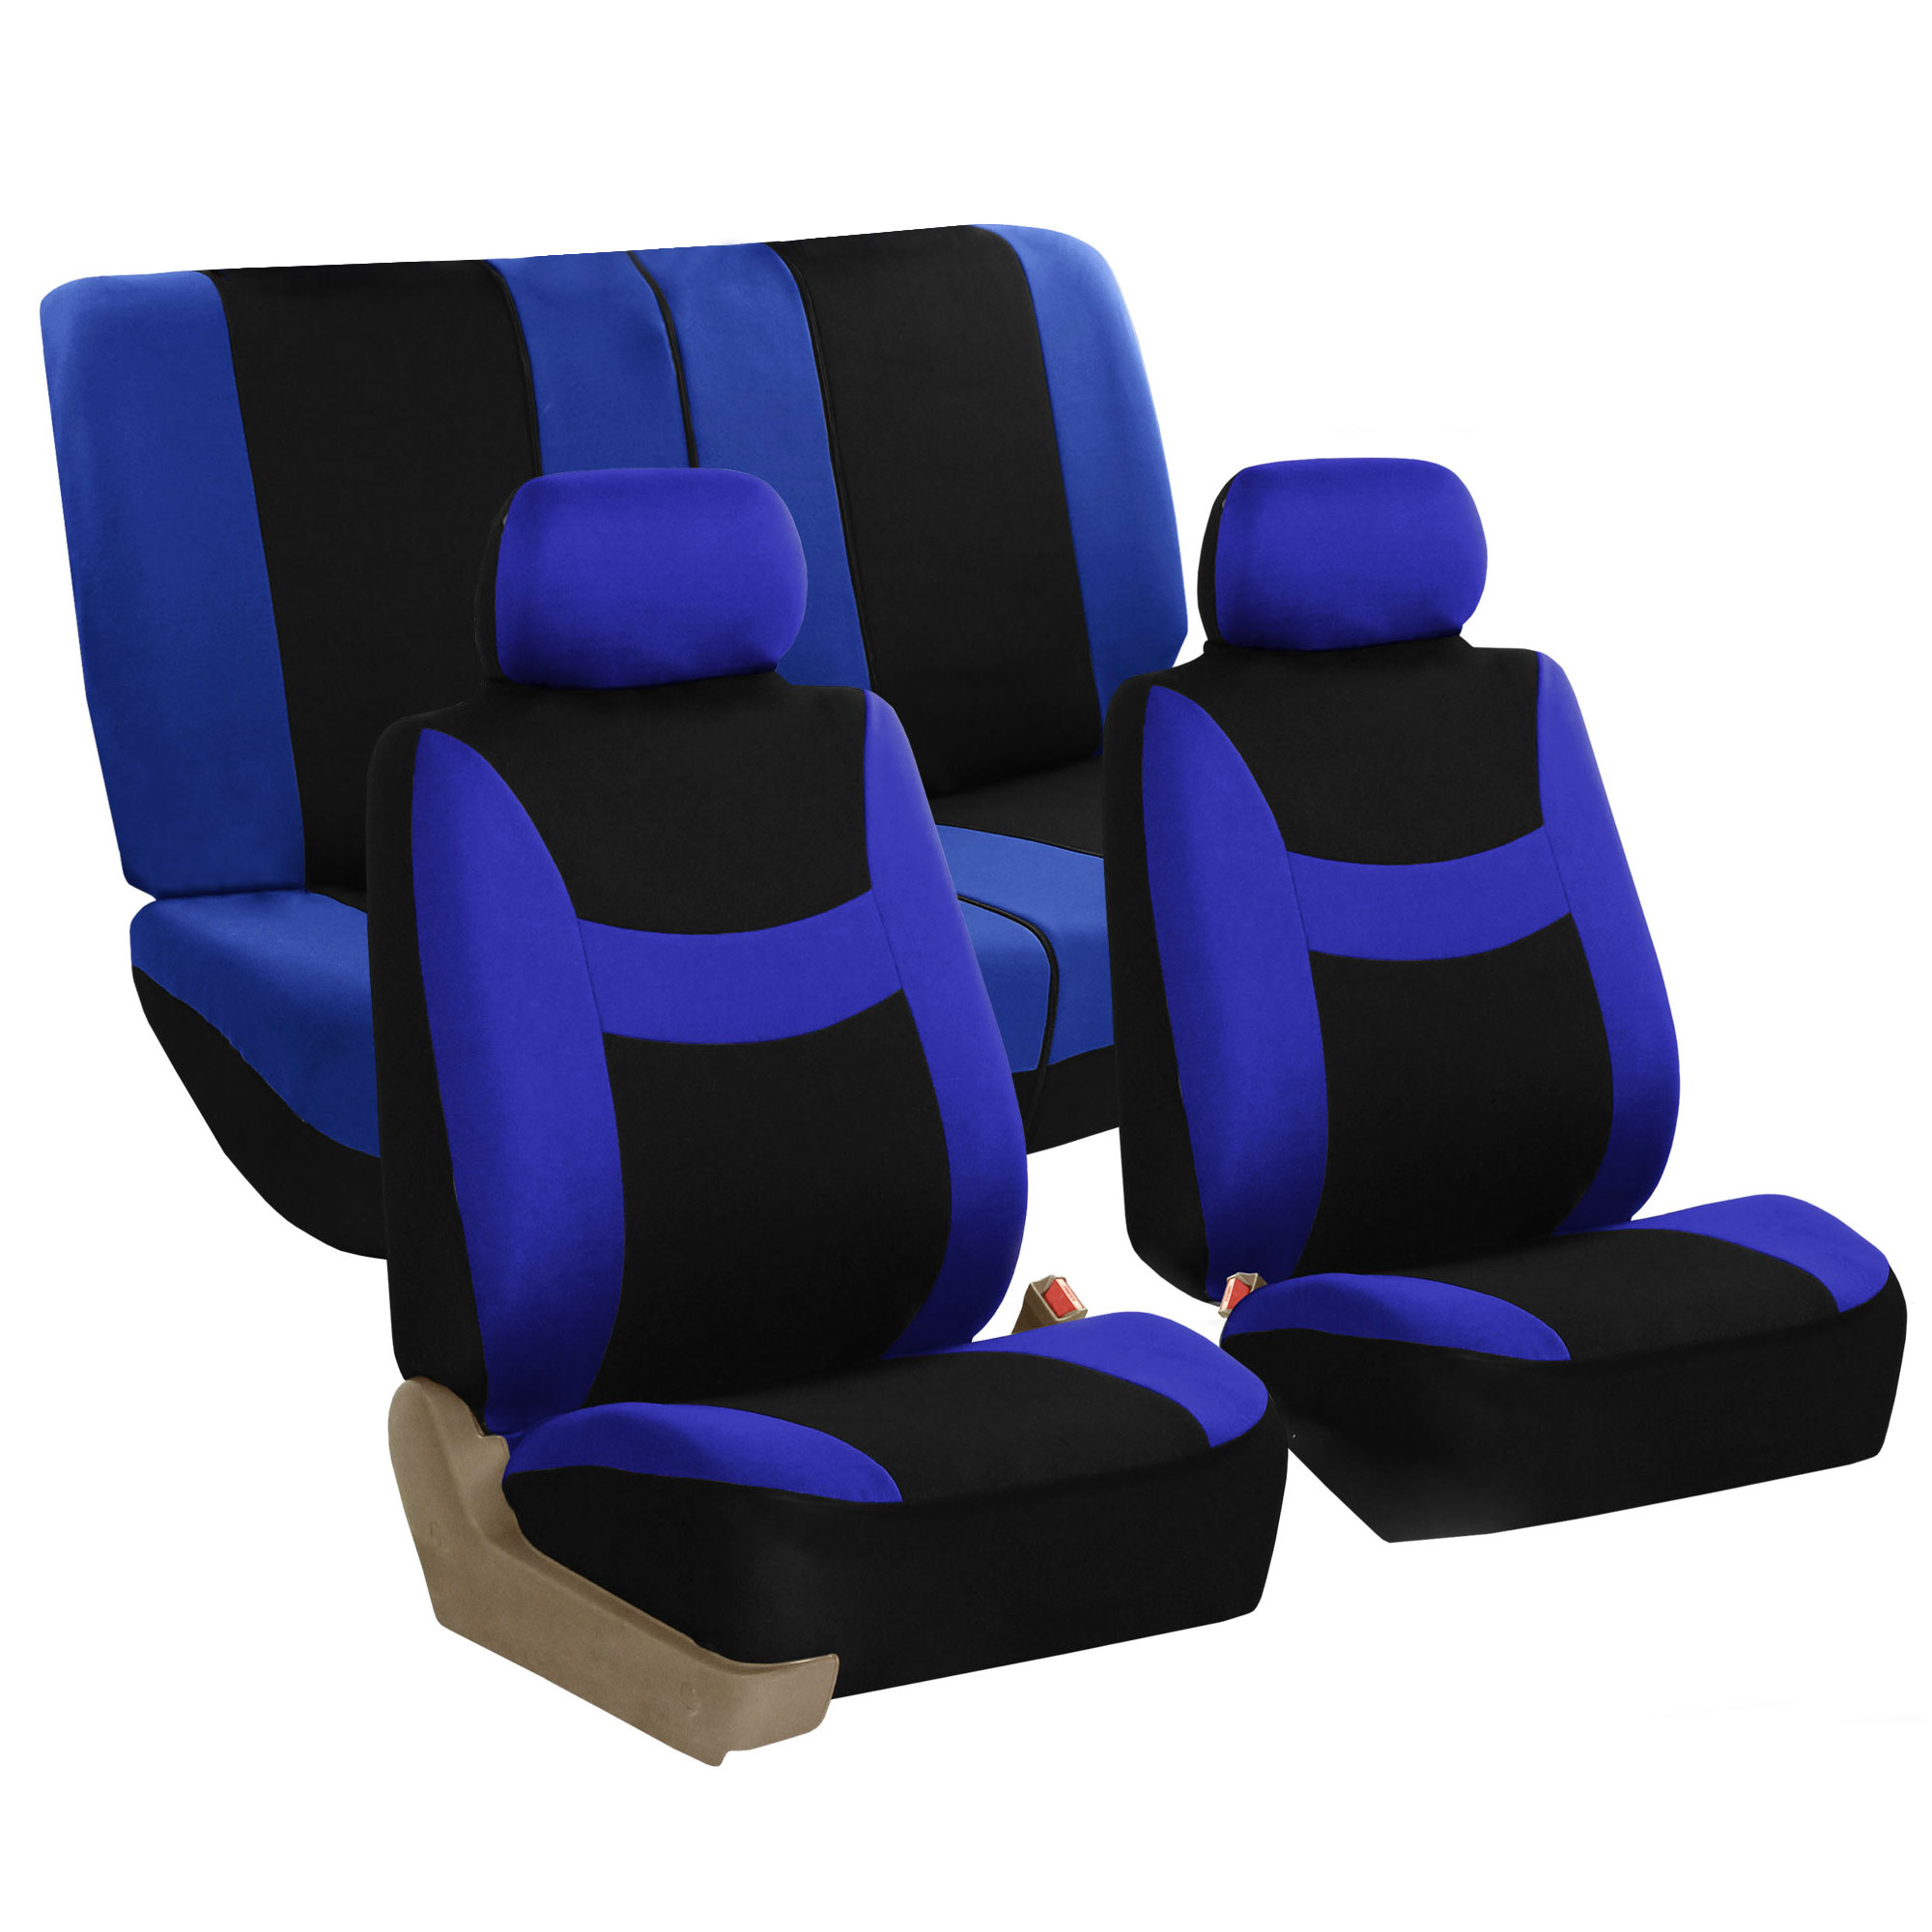 Booster Seat With Lights In Headrest 28 Images